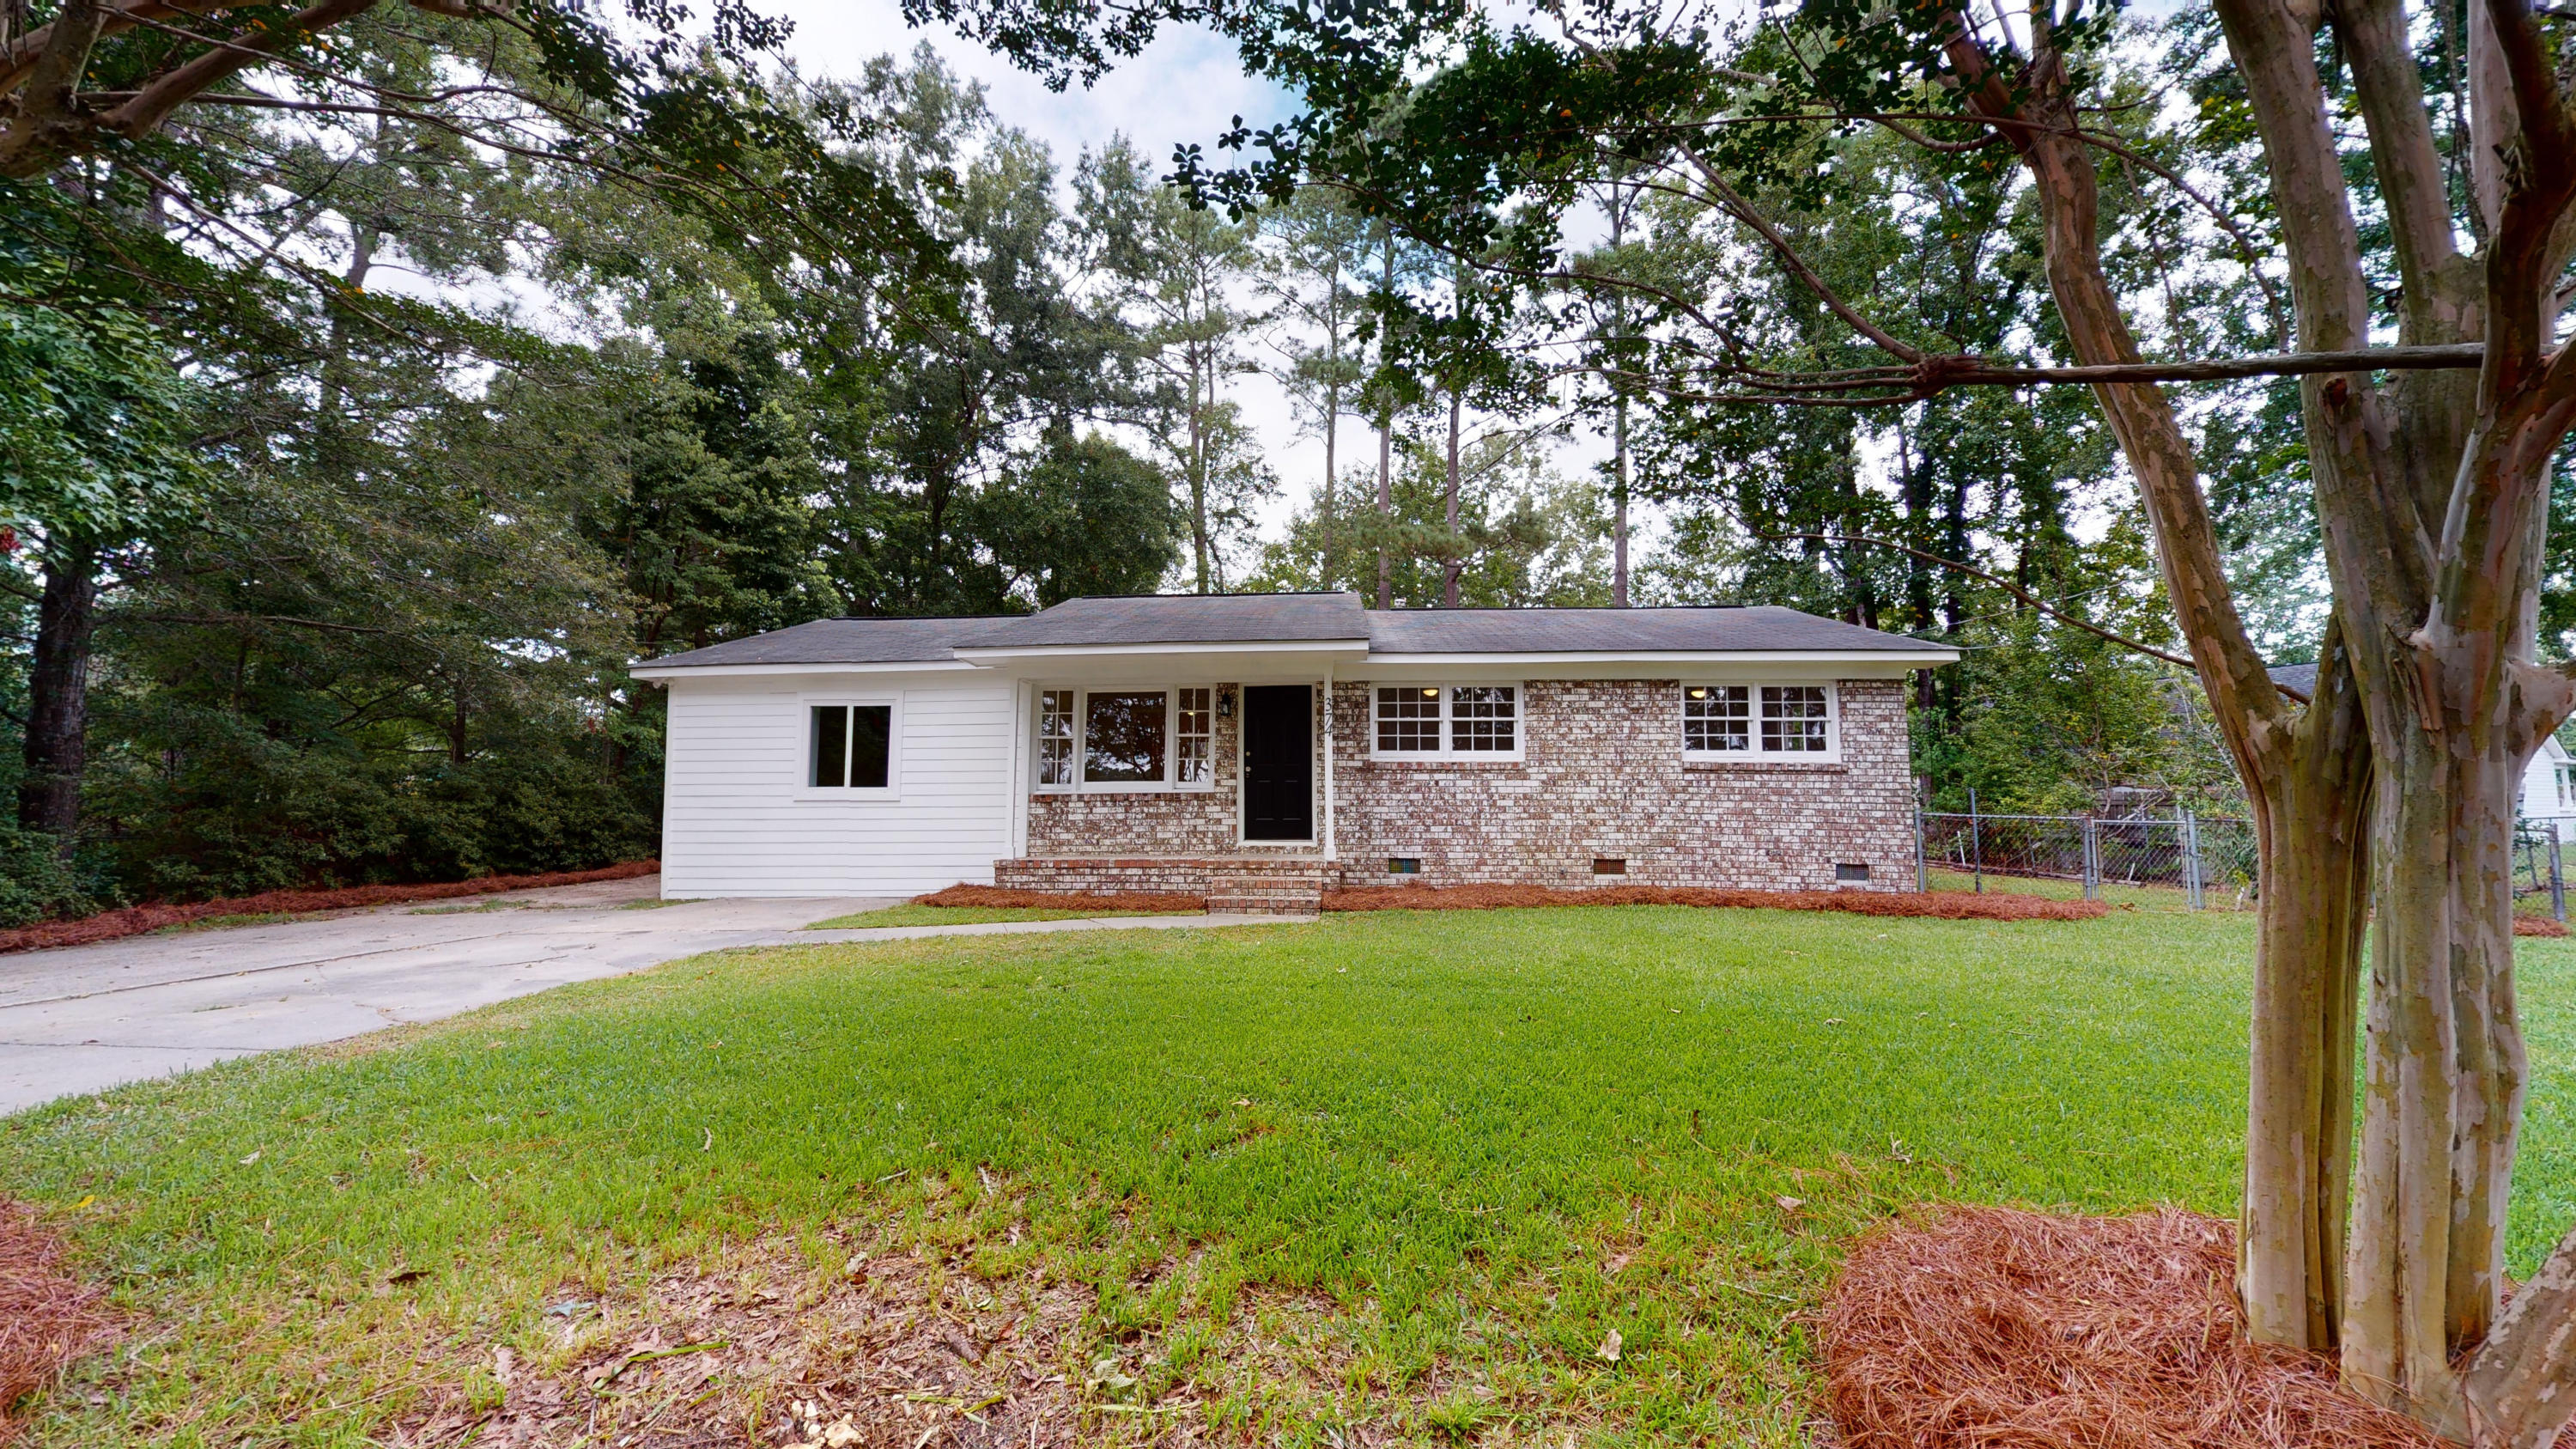 Forest Lawn Homes For Sale - 374 Price, Goose Creek, SC - 25